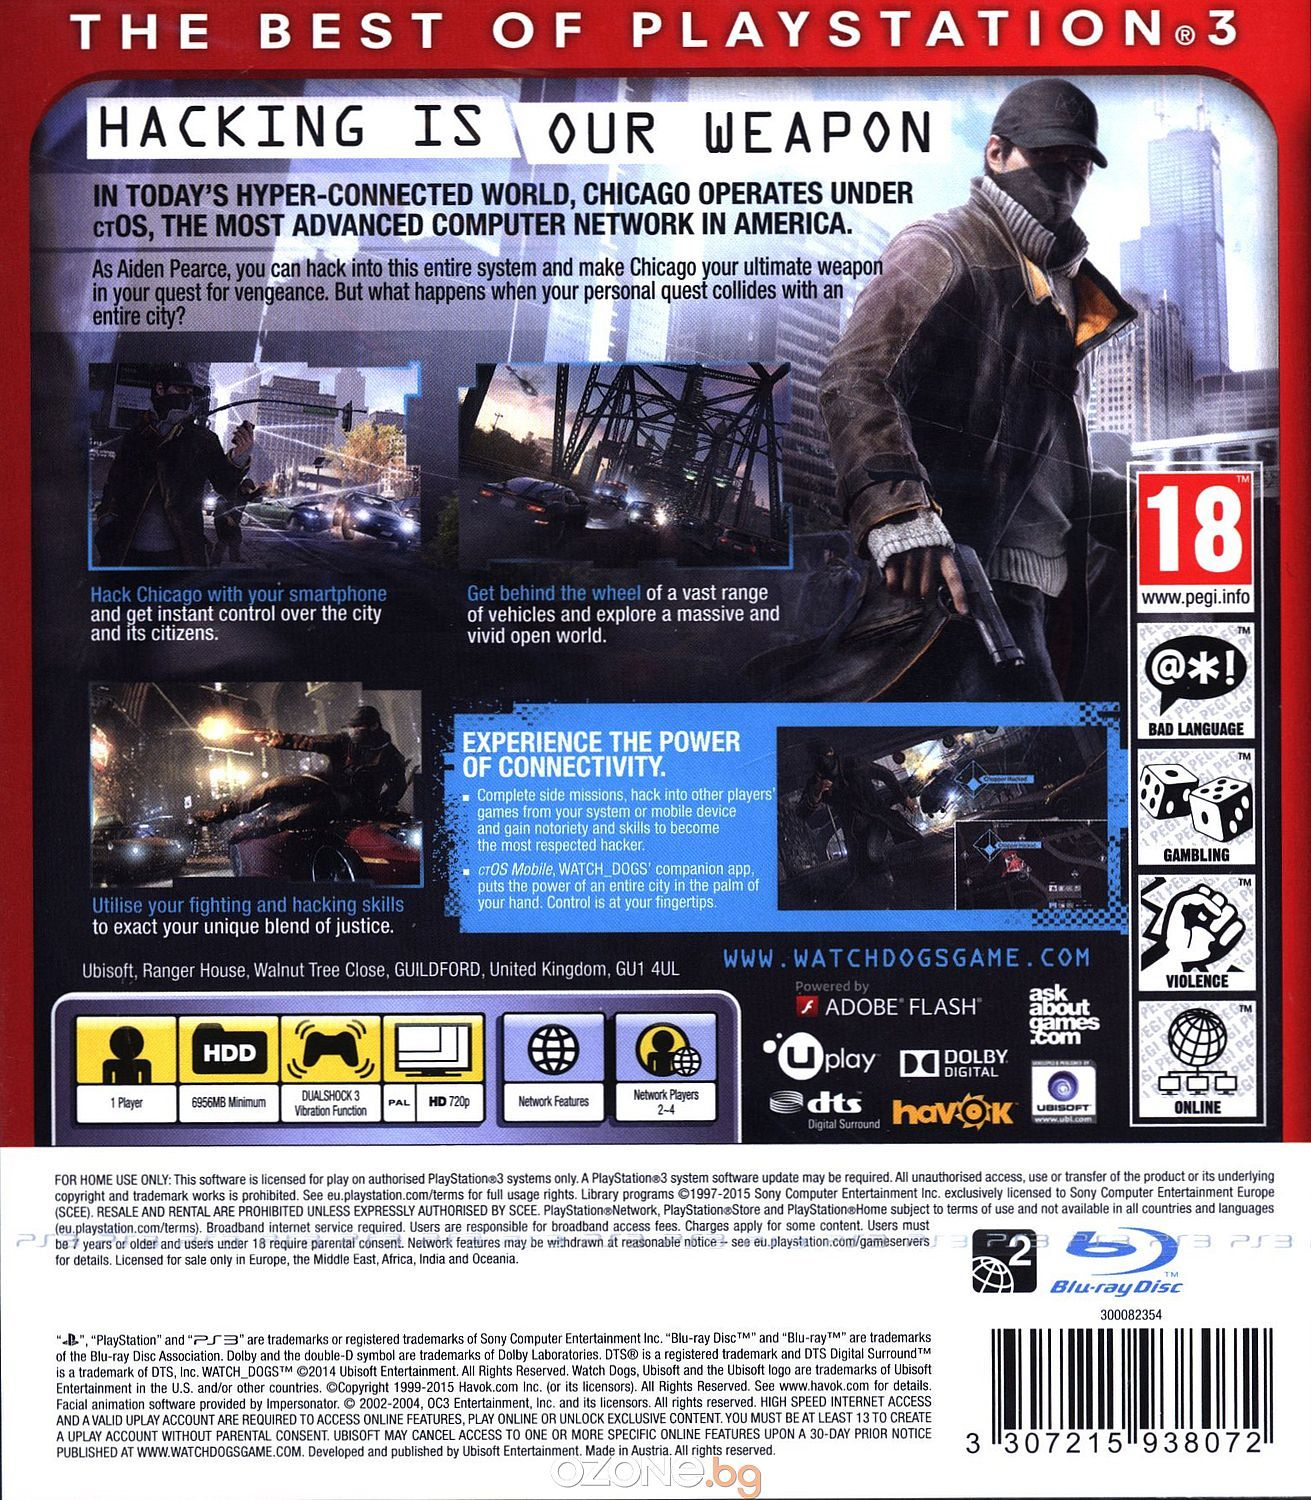 Watch_Dogs (PS3) - 15